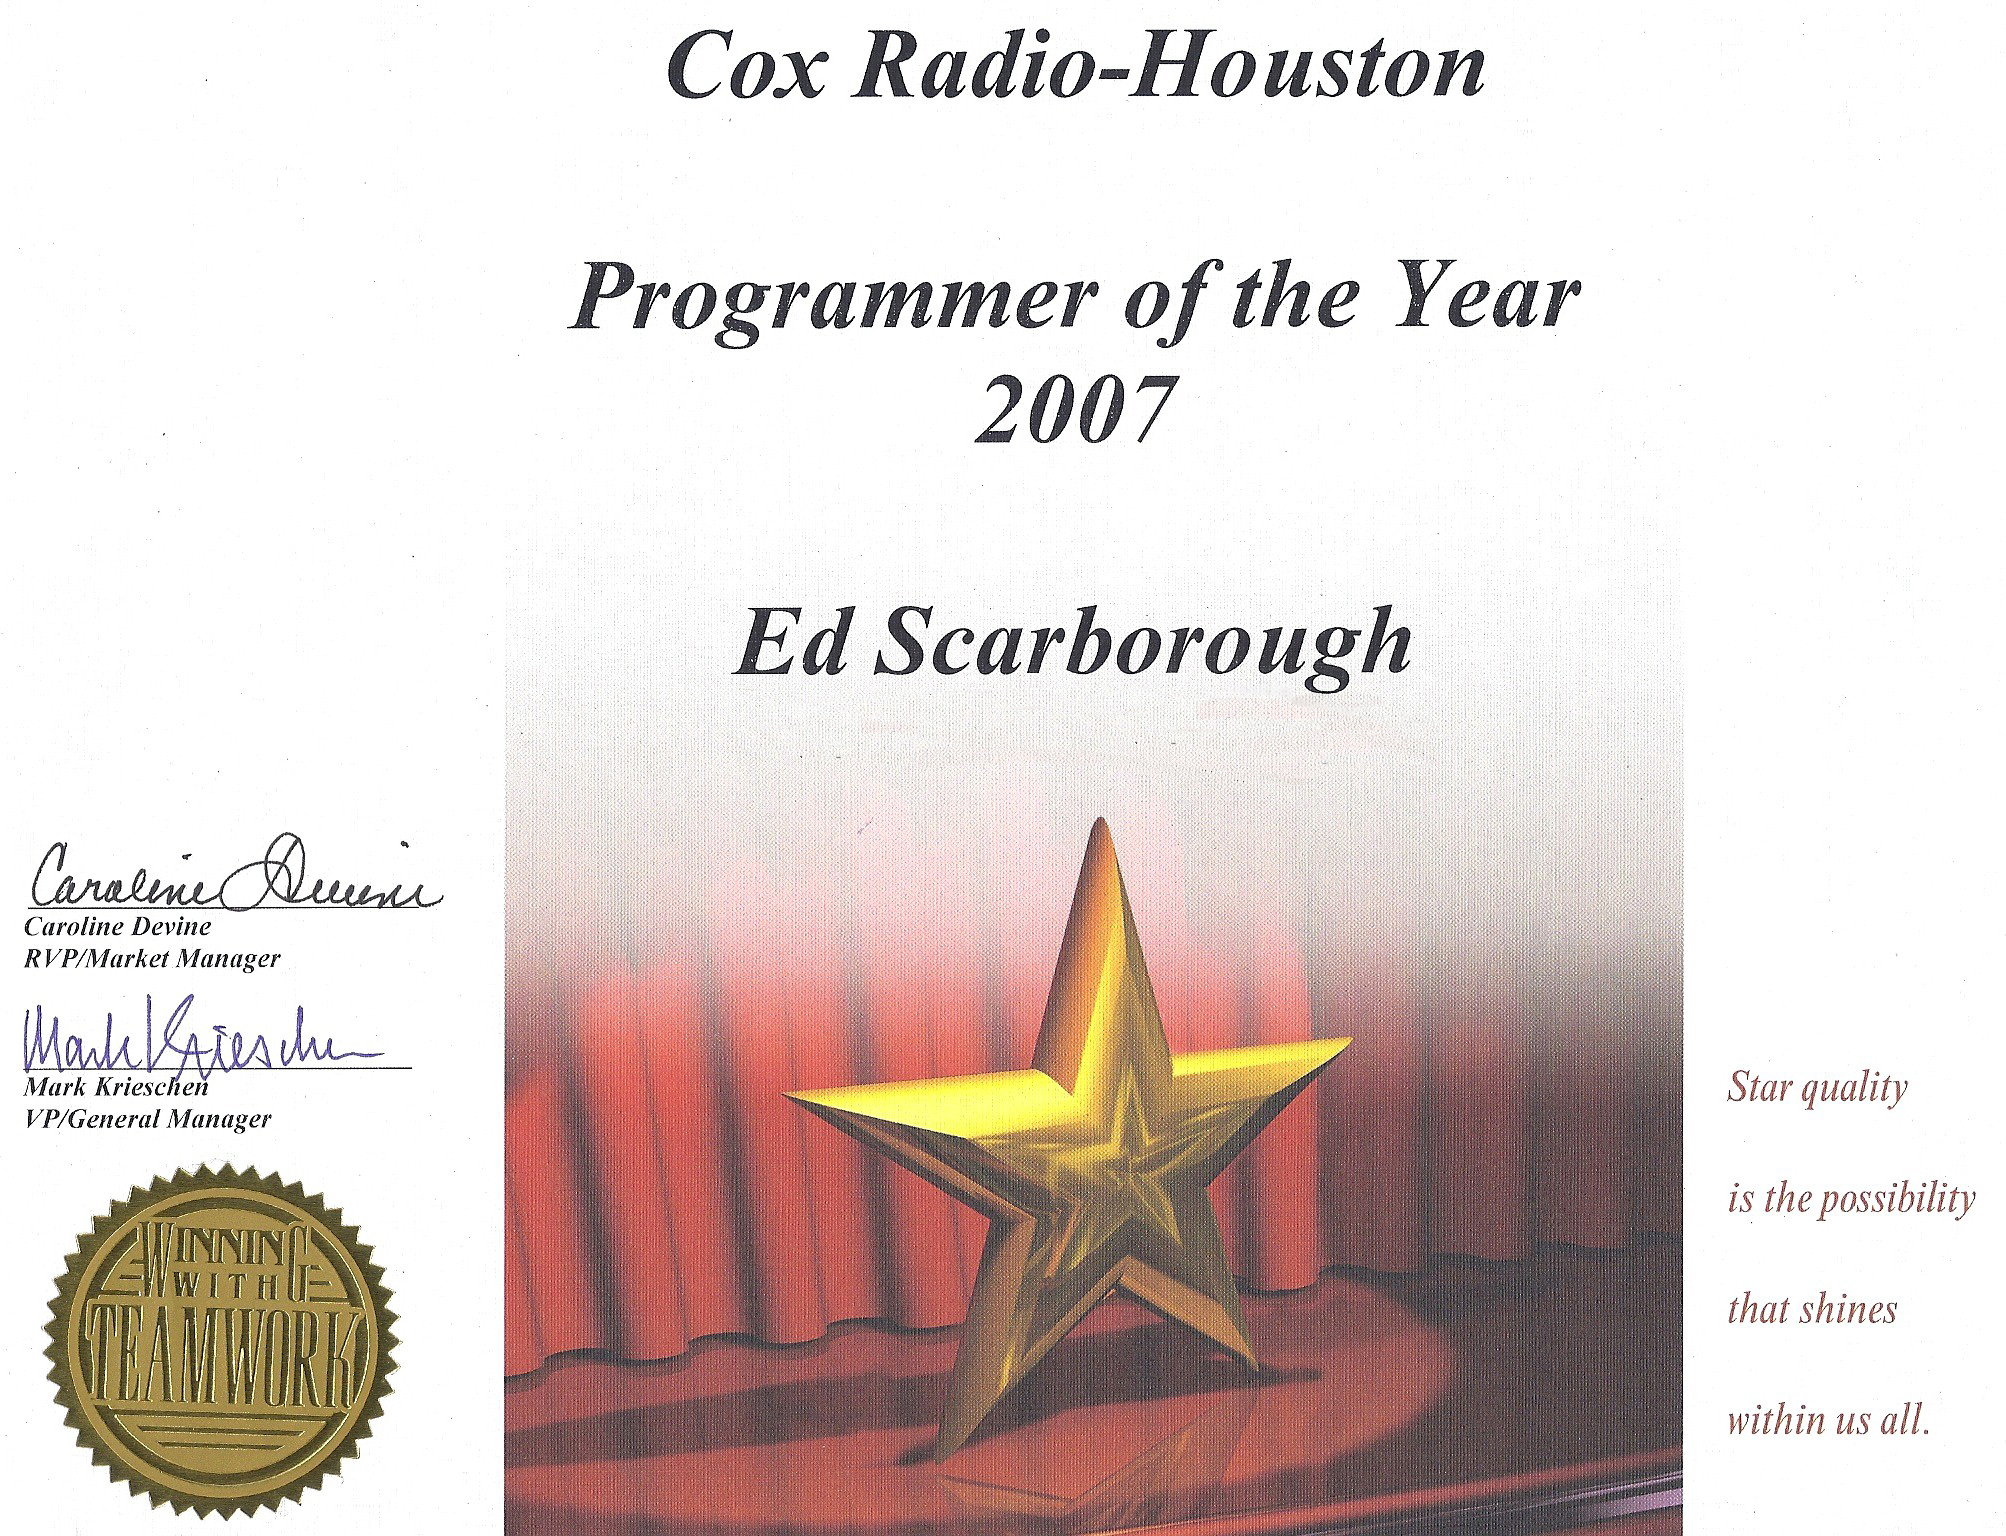 Ed Scarborough Radio Program Director Khtc Houston Kqxt